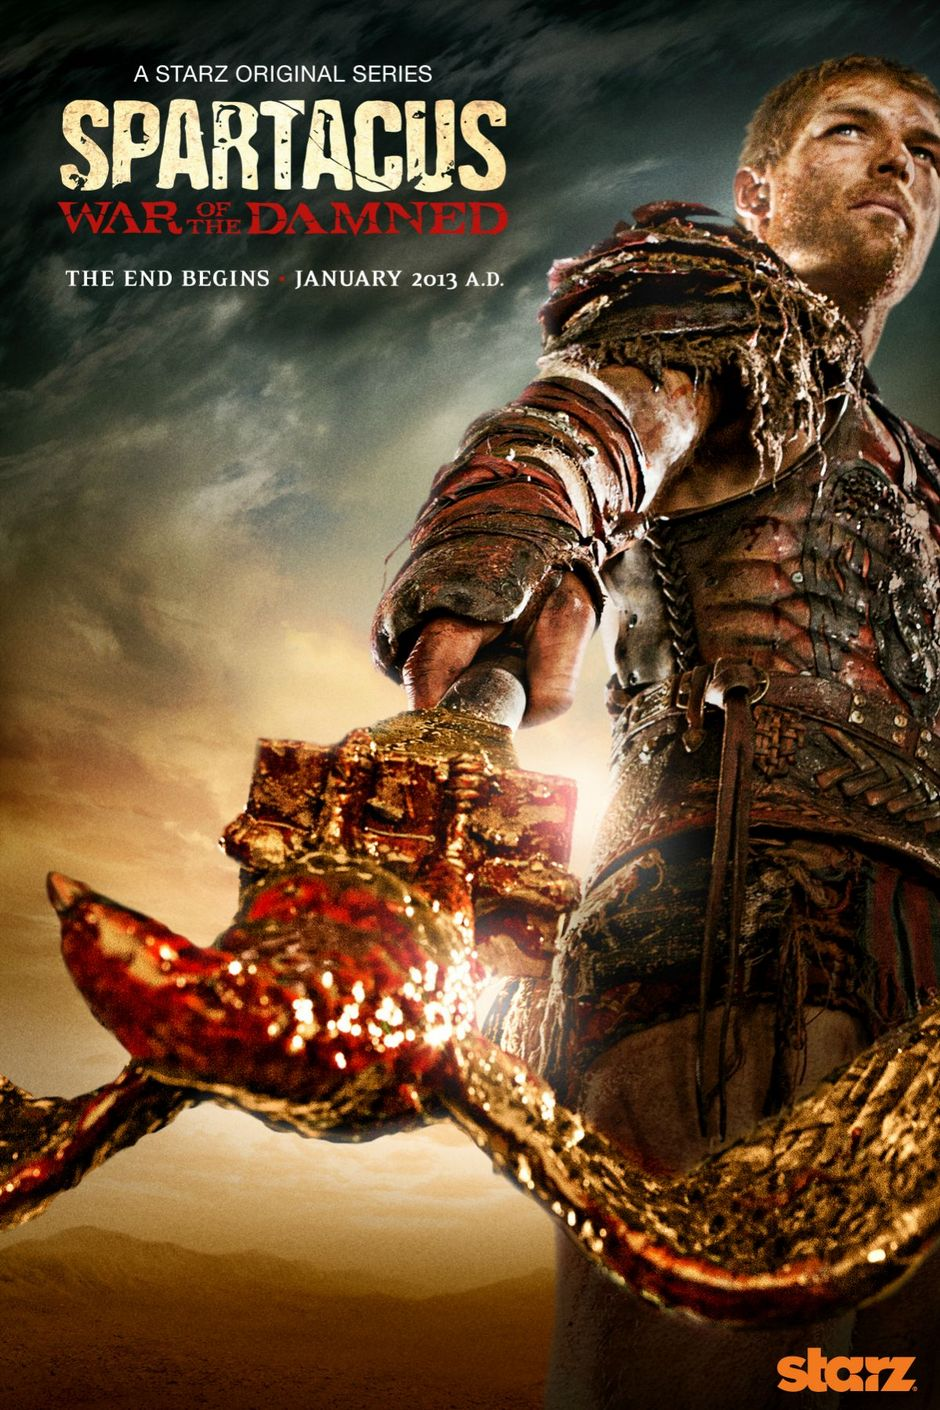 Download spartacus war of the damned.